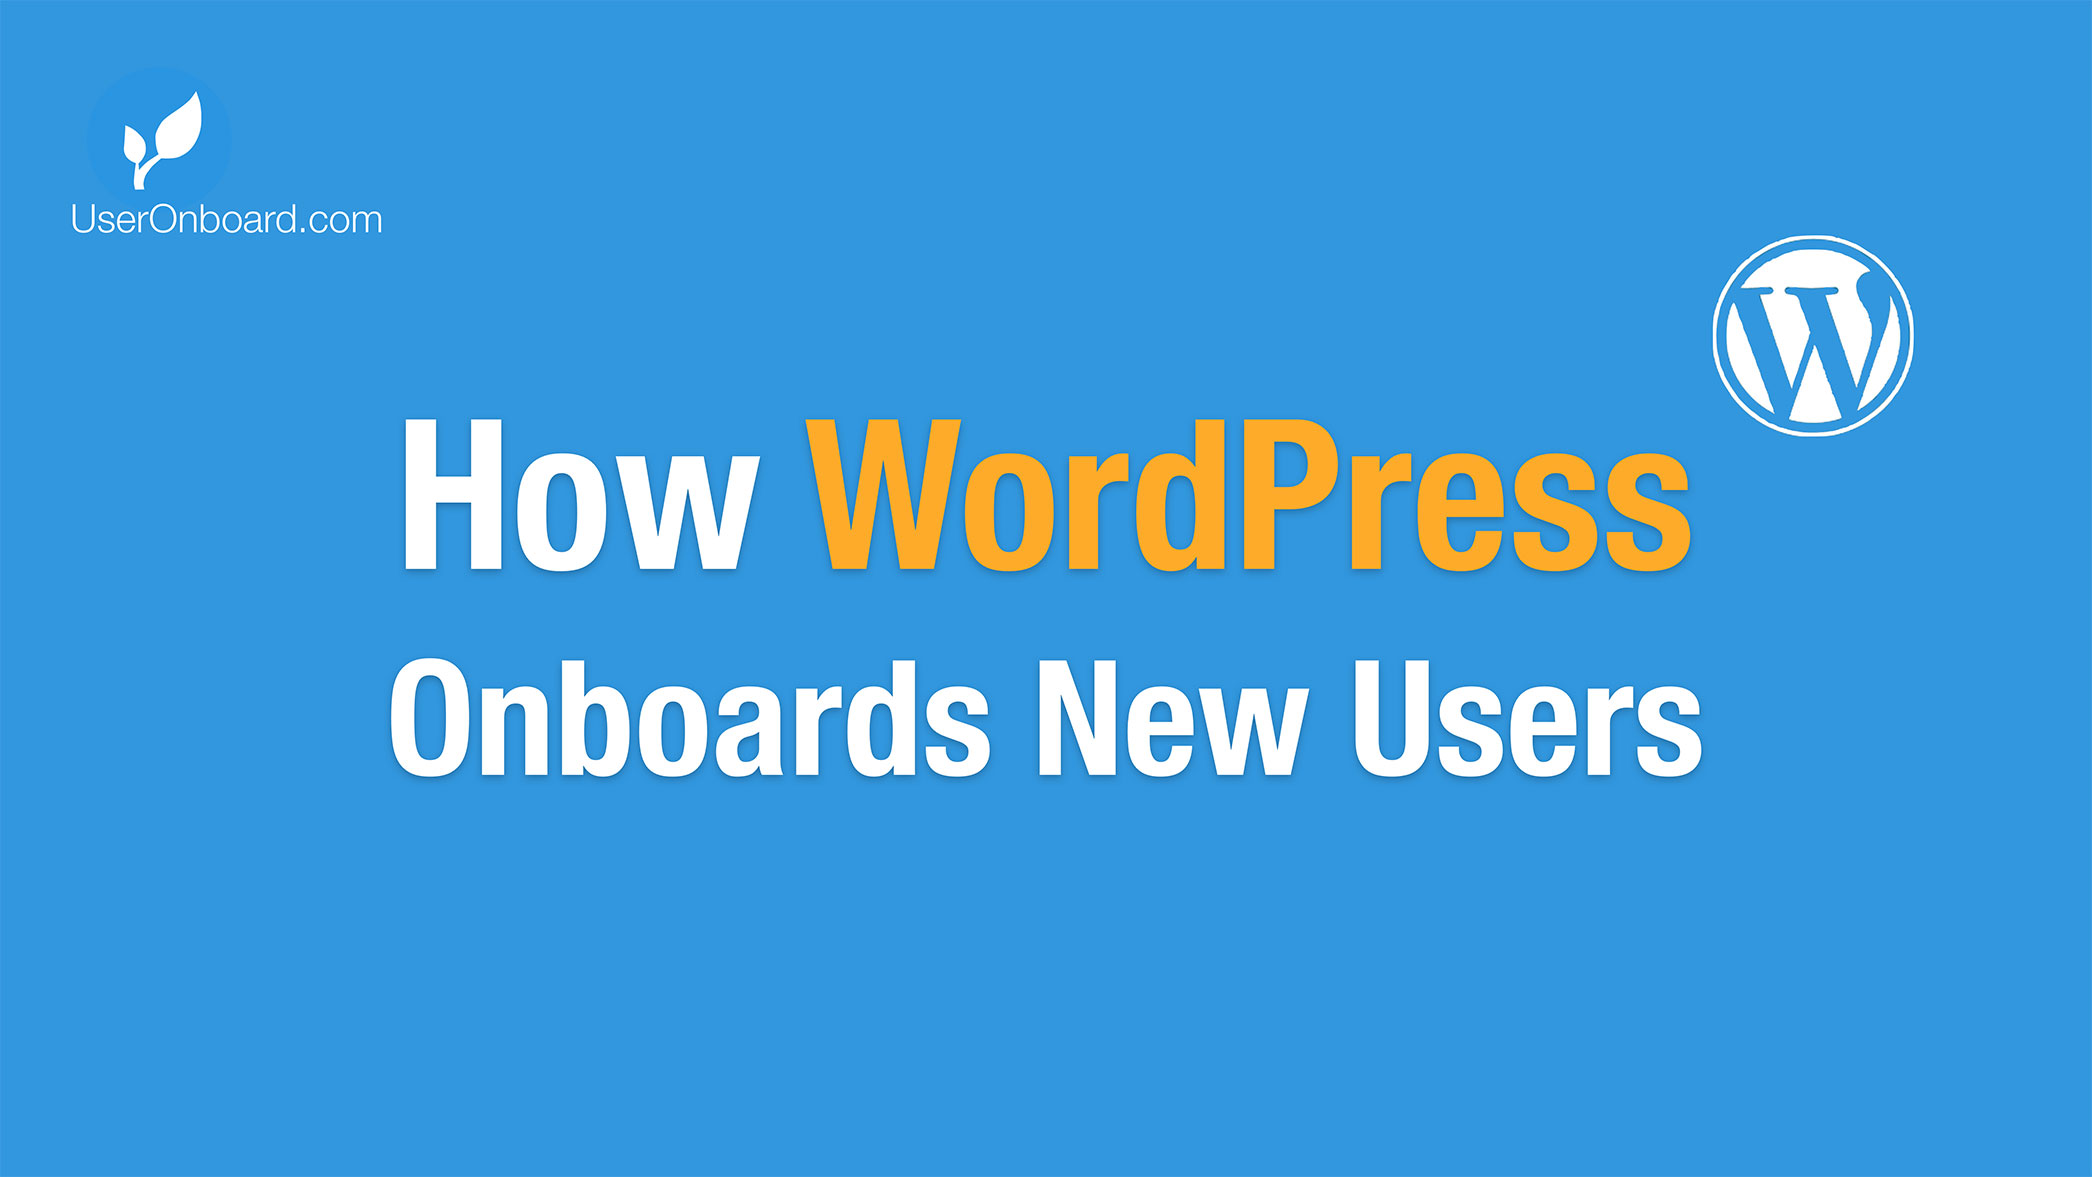 How WordPress Onboards New Users